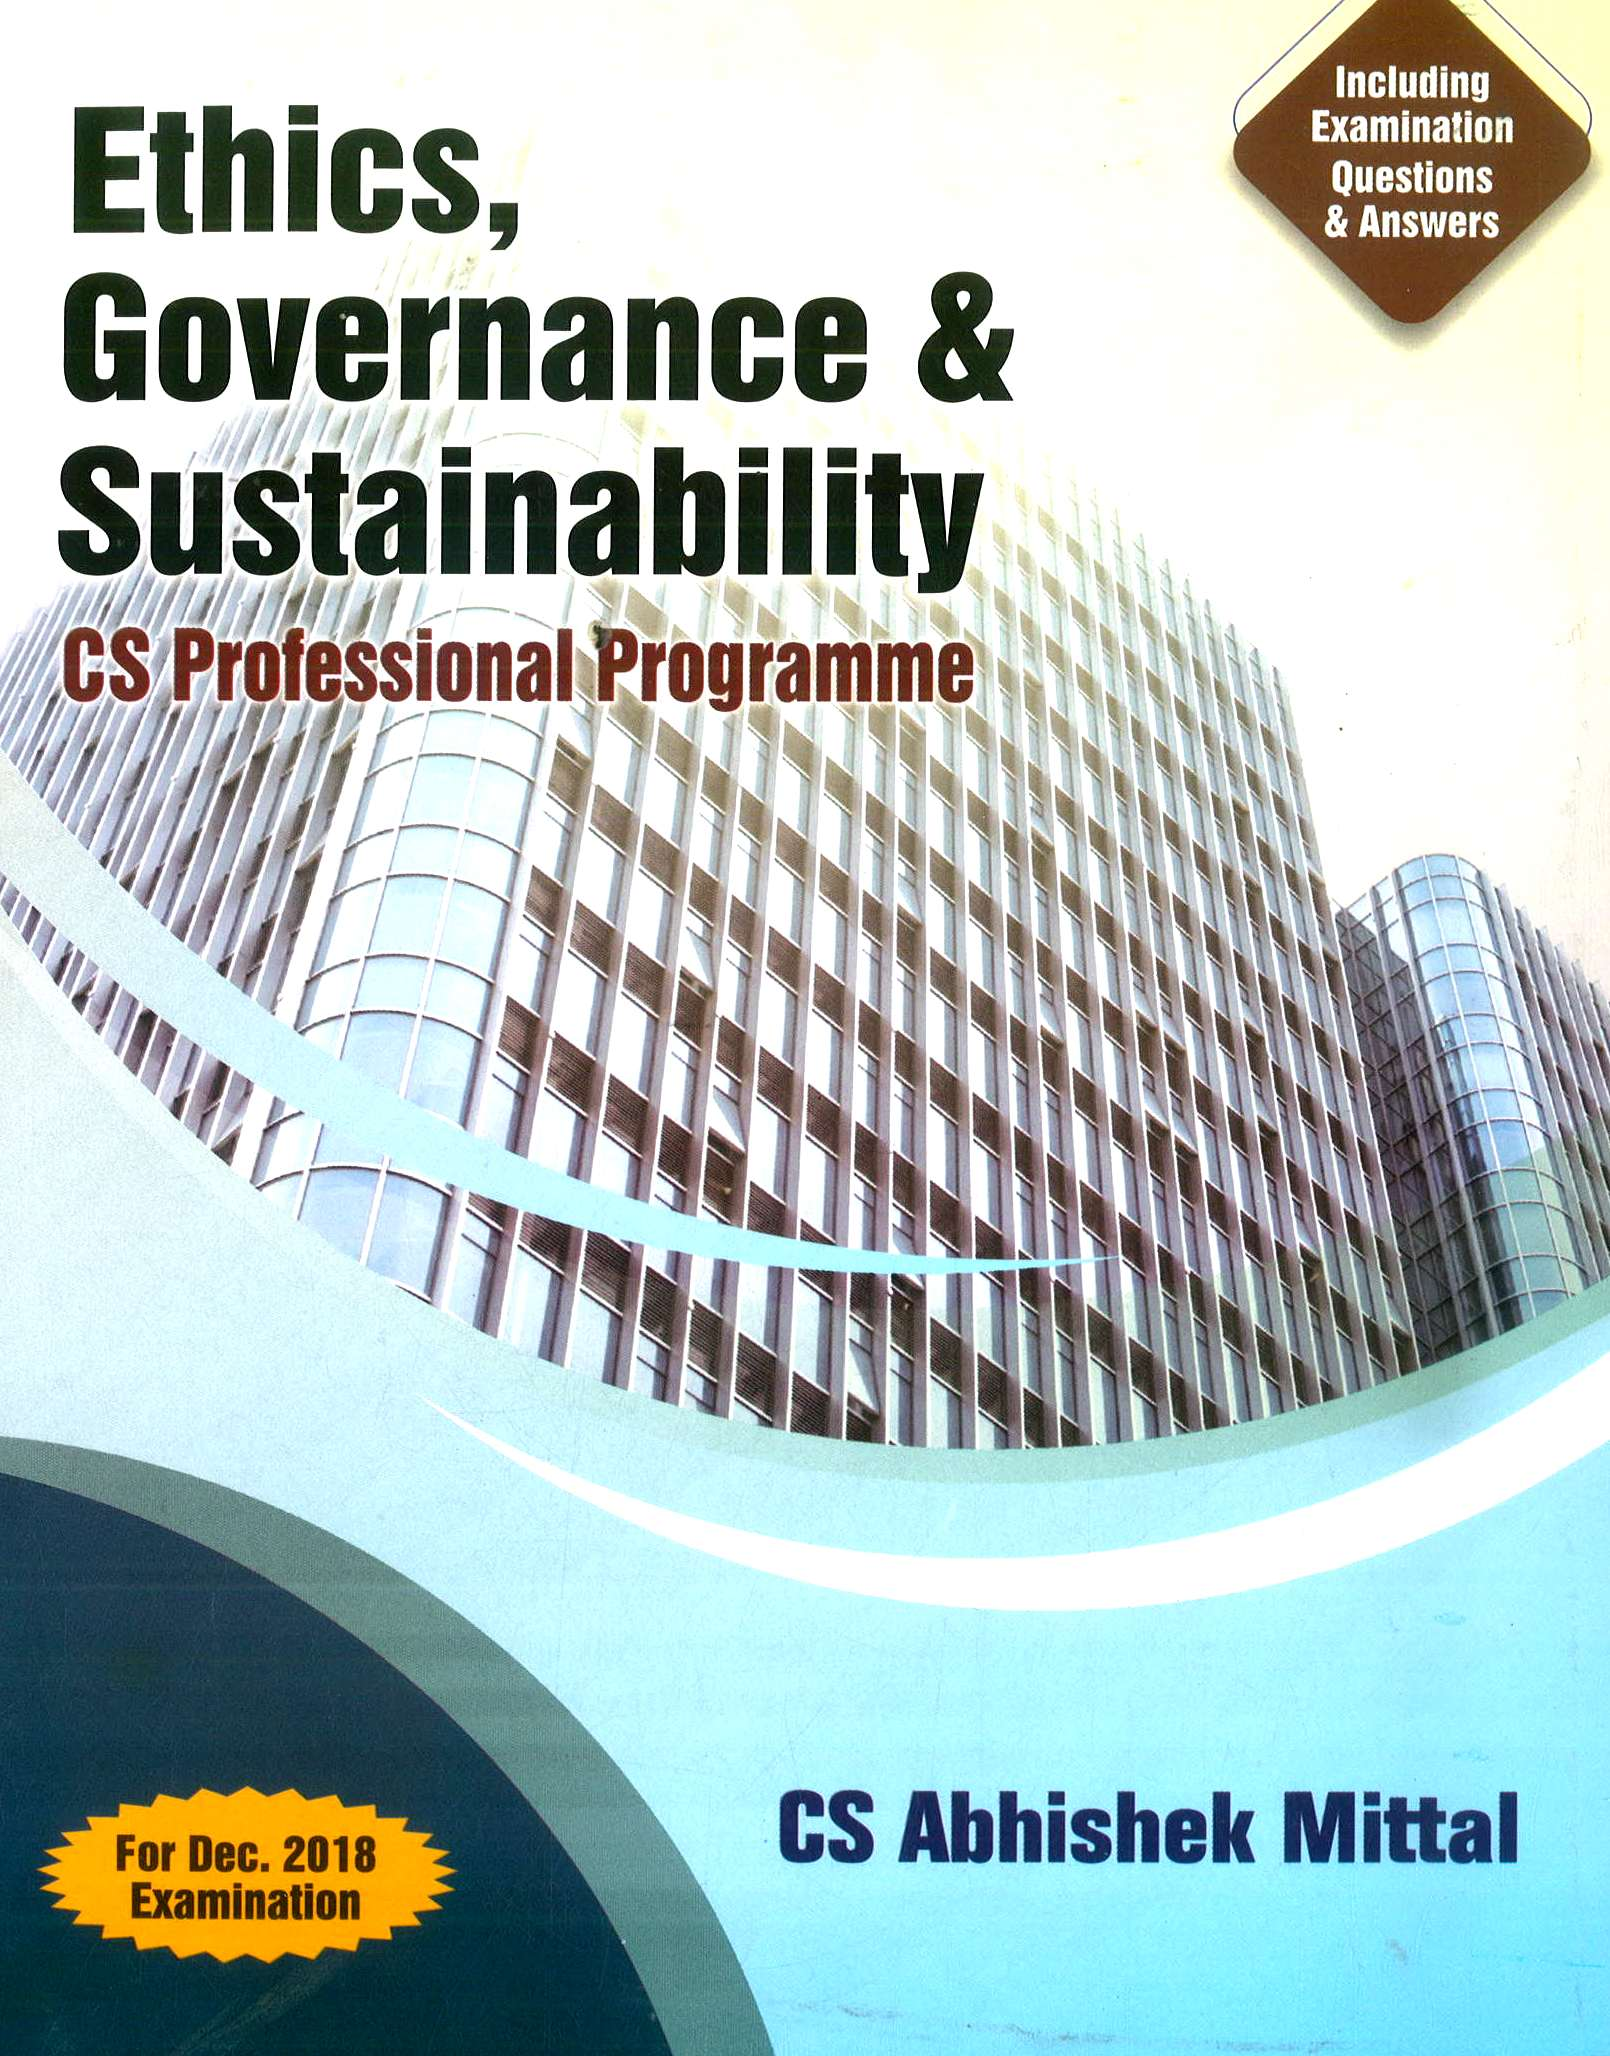 Sangeet Kedia Governance risk management compliance and Ethics, CS Professional Programme (New Syllabus) by Abhishek Mittal for june 2020